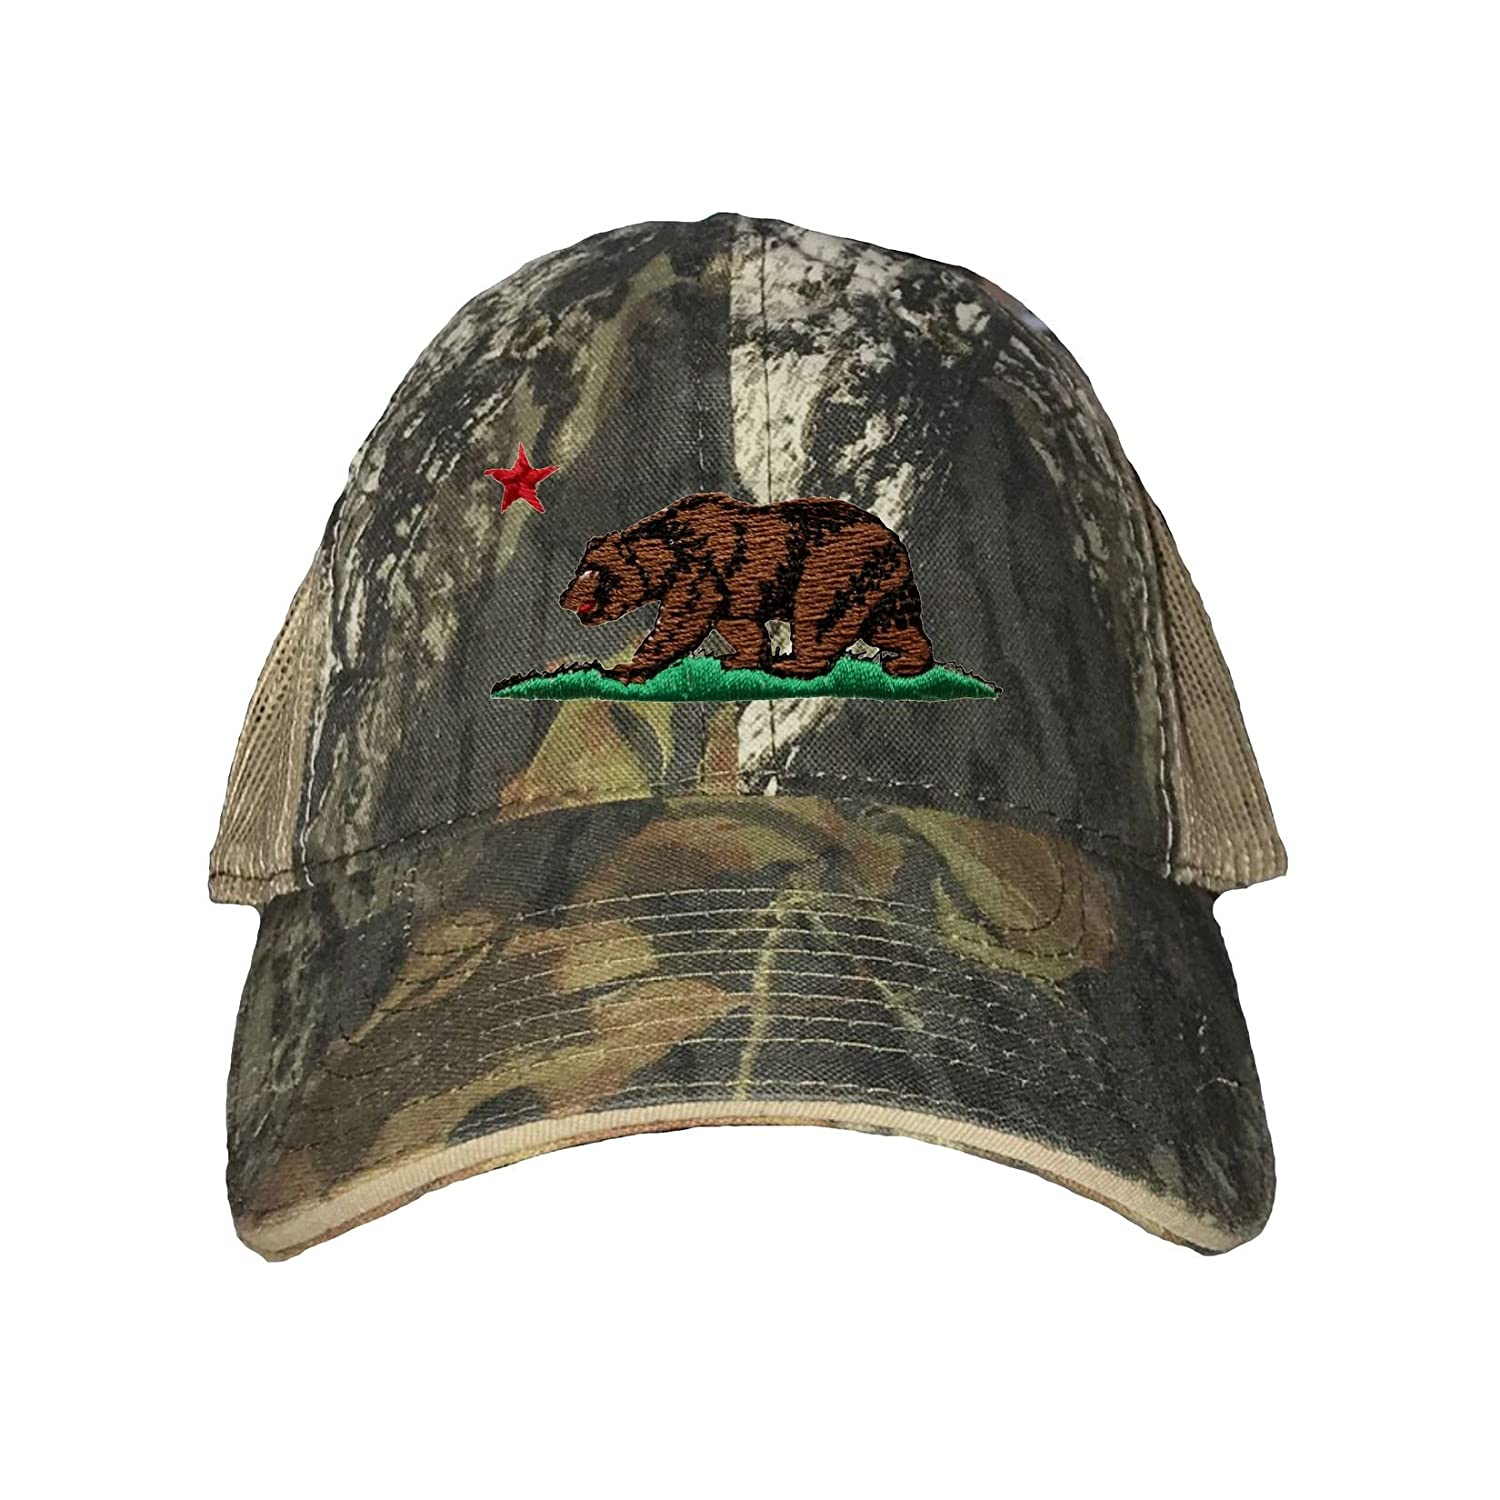 c942841c4ce Amazon.com  Go All Out One Size Black Grey Adult California Republic Bear  Embroidered Distressed Trucker Cap  Clothing